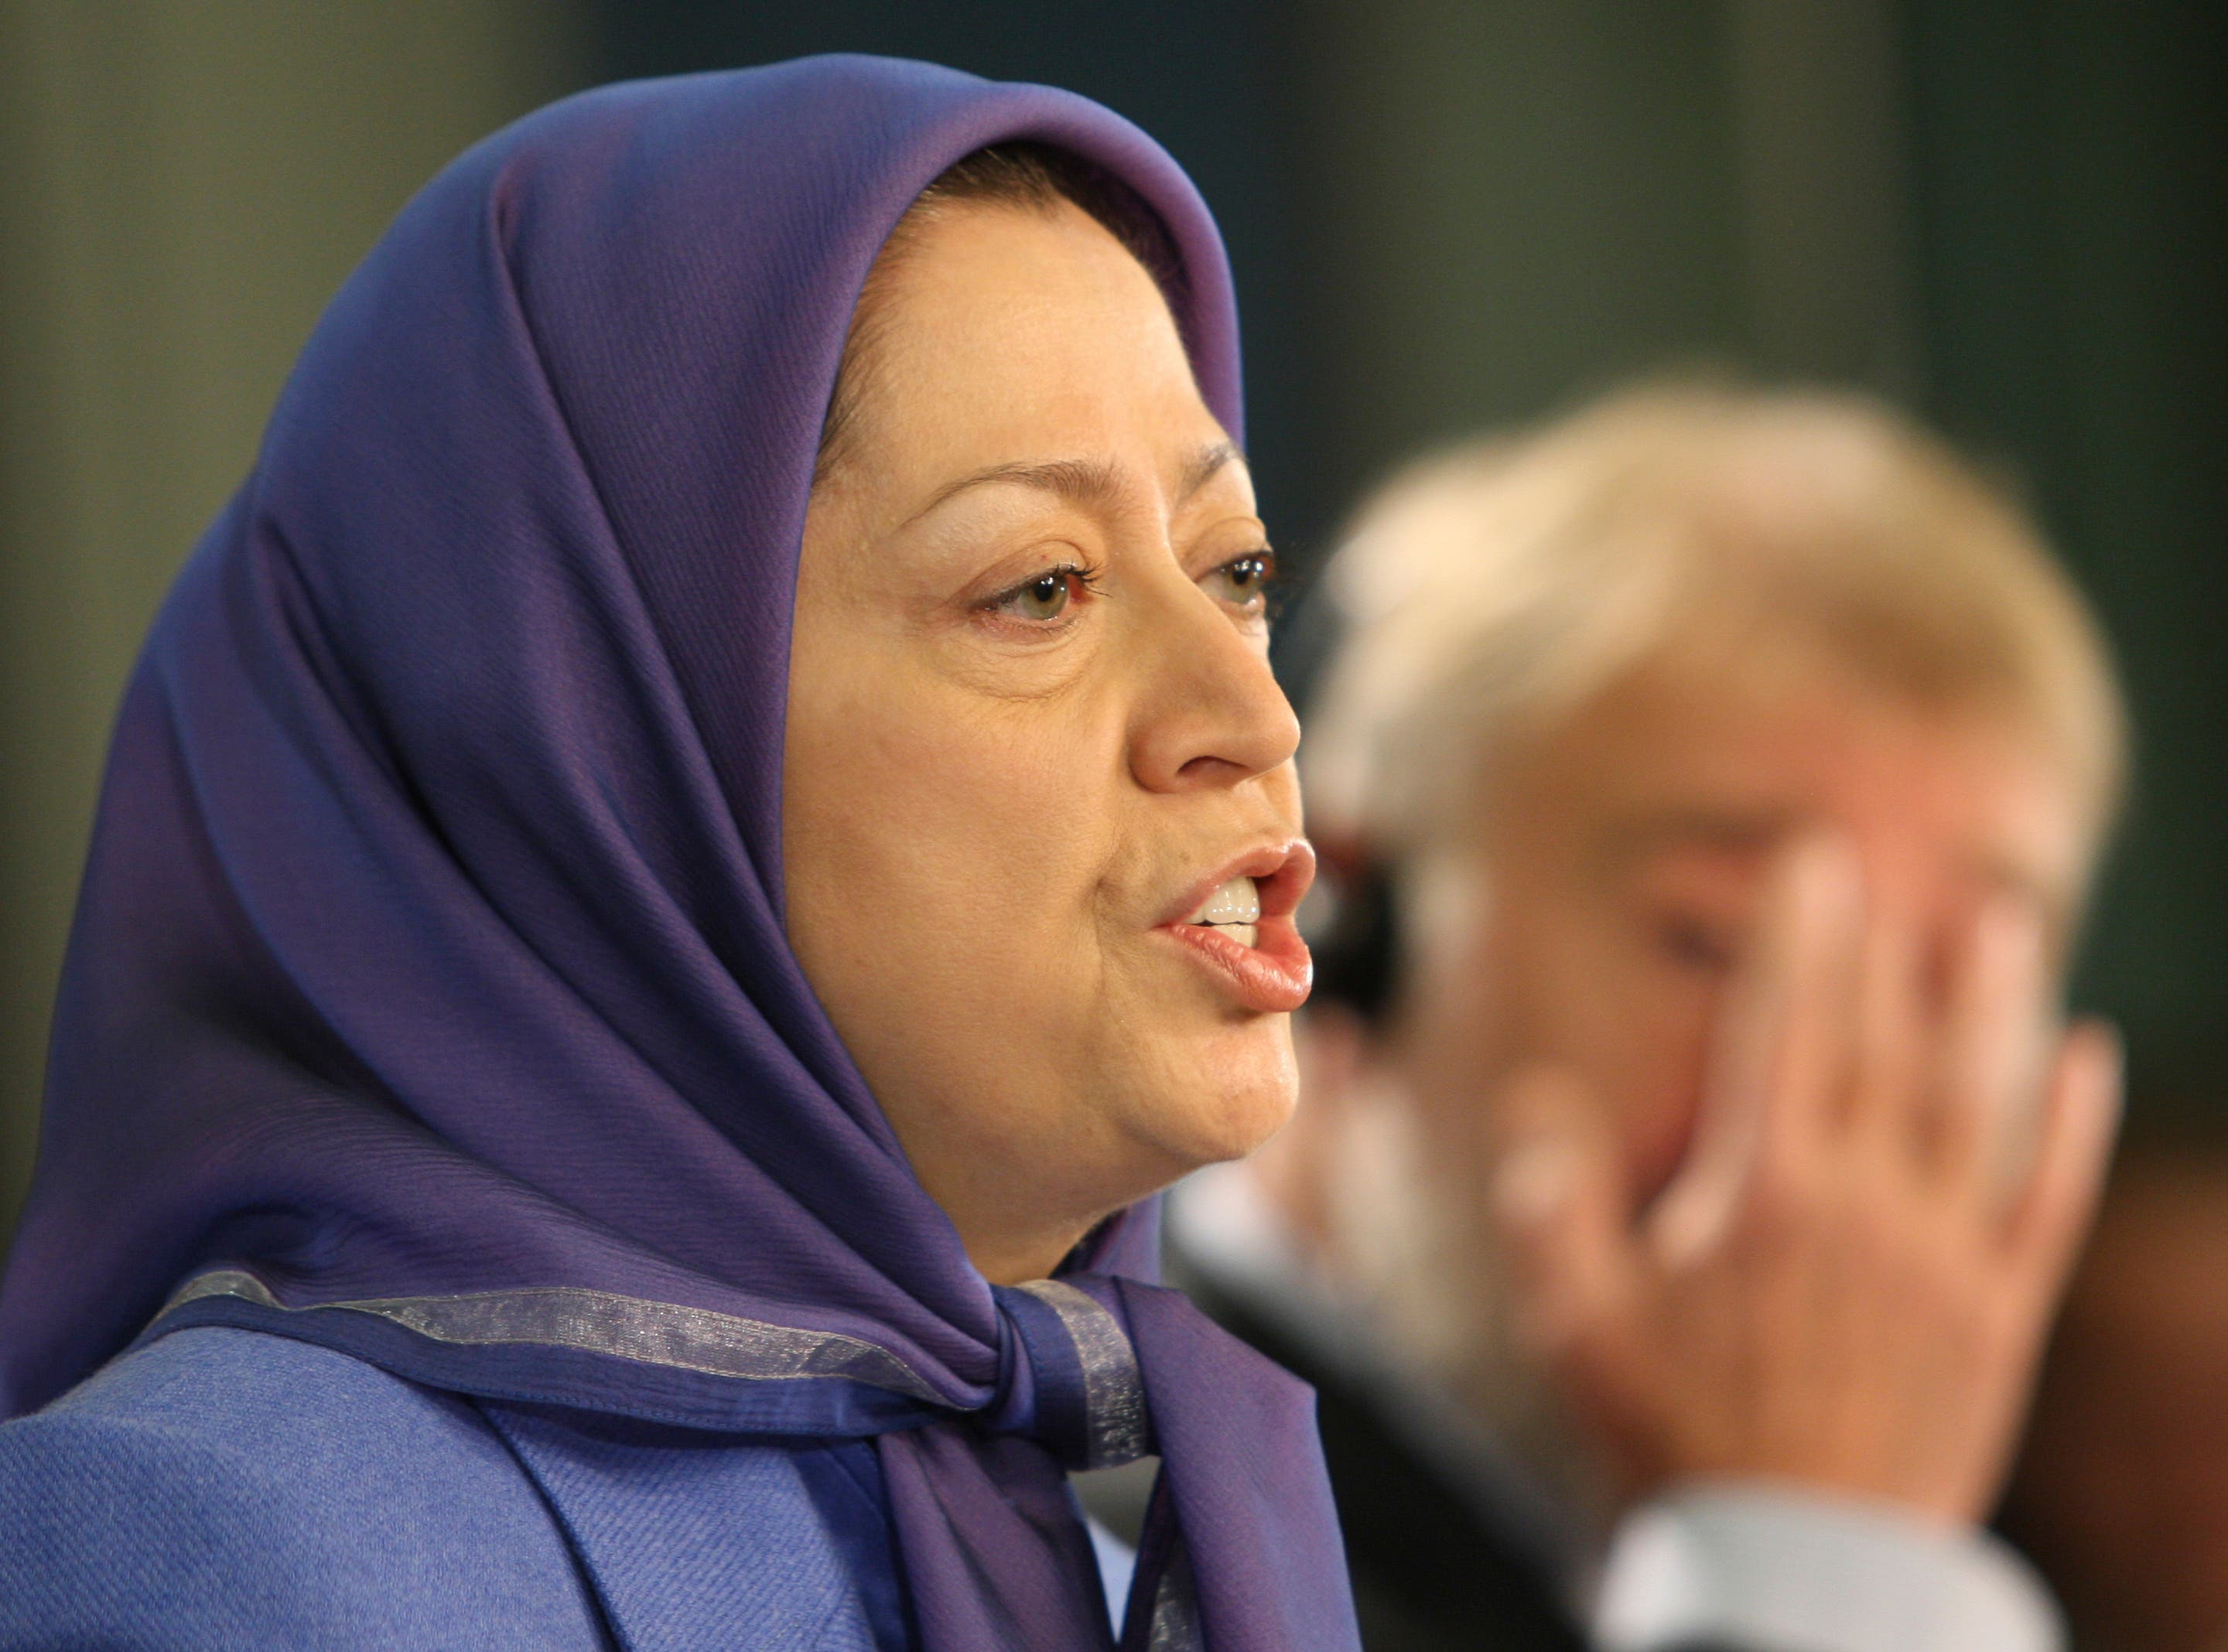 Maryam Rajavi, leader of the National Council of Resistance of Iran addresses the media in Brussels. (File: AP)